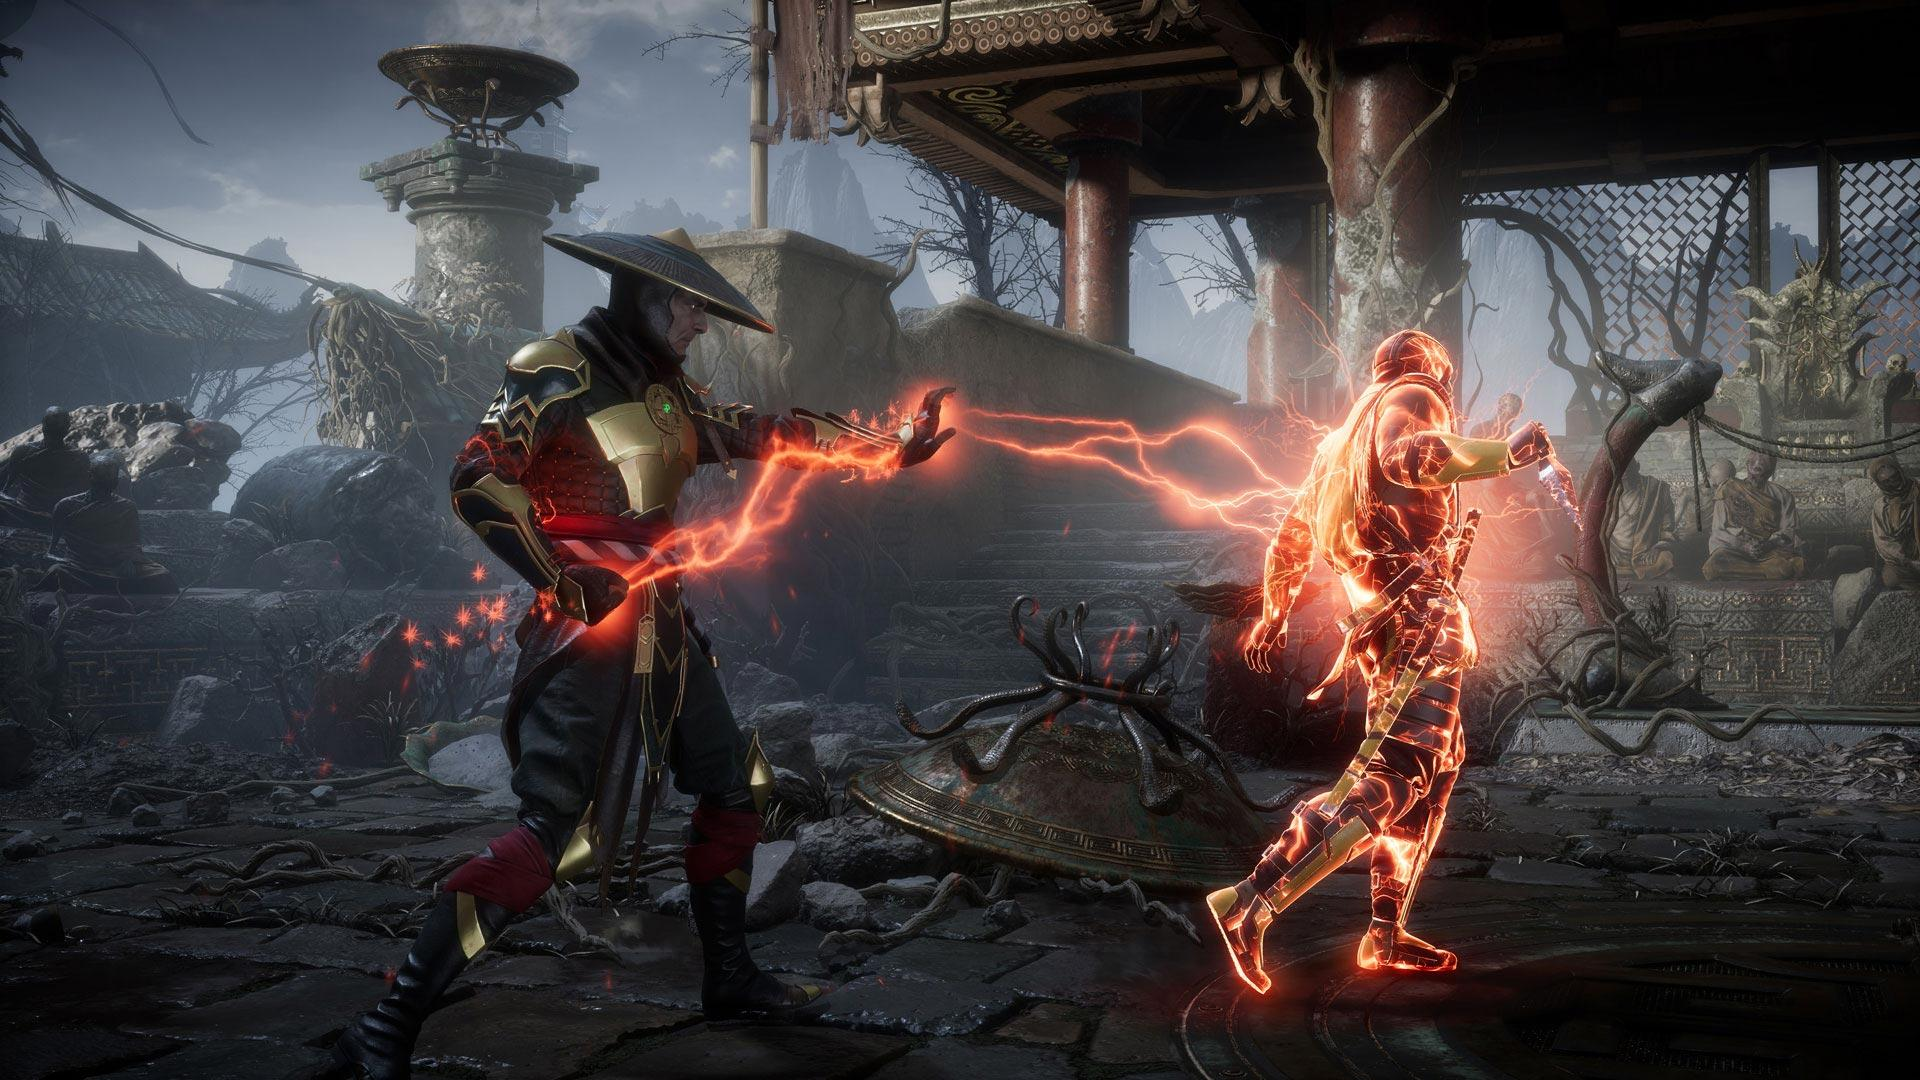 Mortal Kombat 11 Will Let You Customize Characters, Has eSports